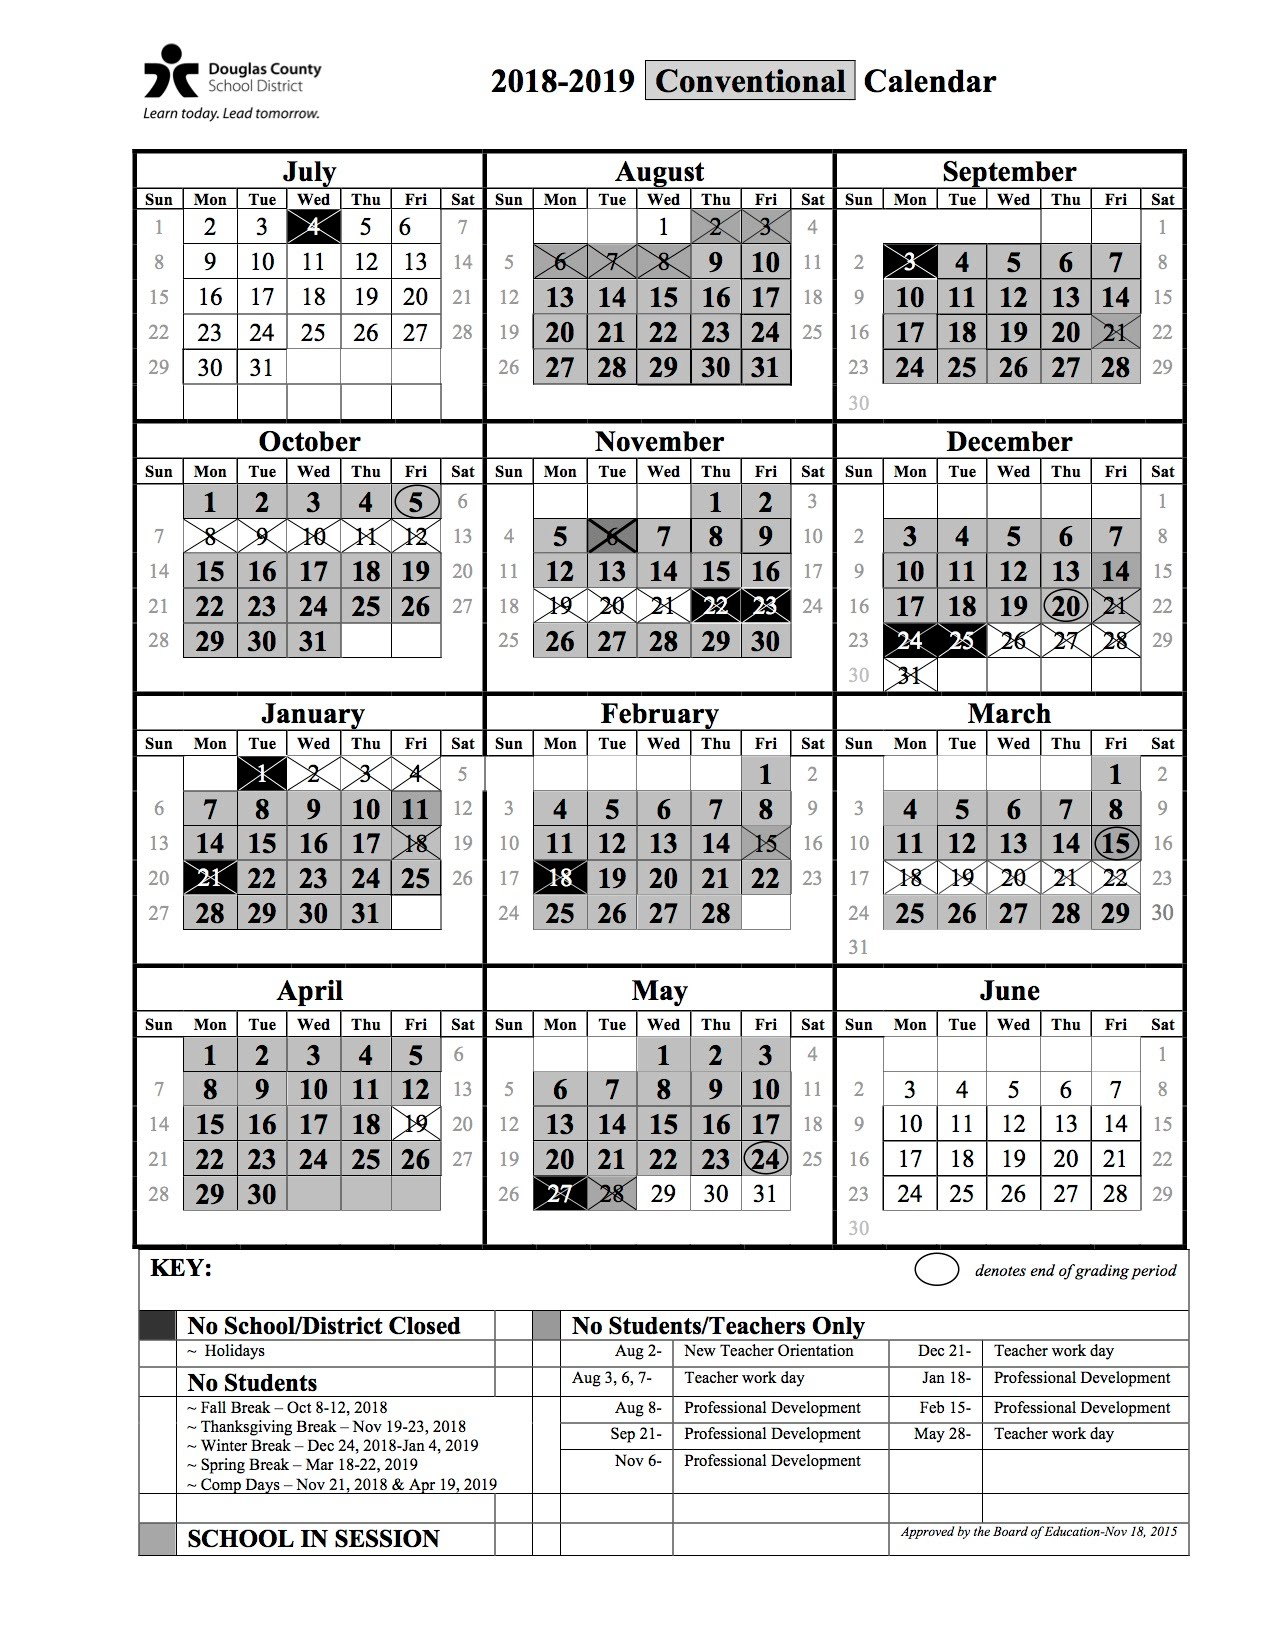 Day Of Year Calendar 2019 18 19 school year calendar   Mountain Ridge Middle School